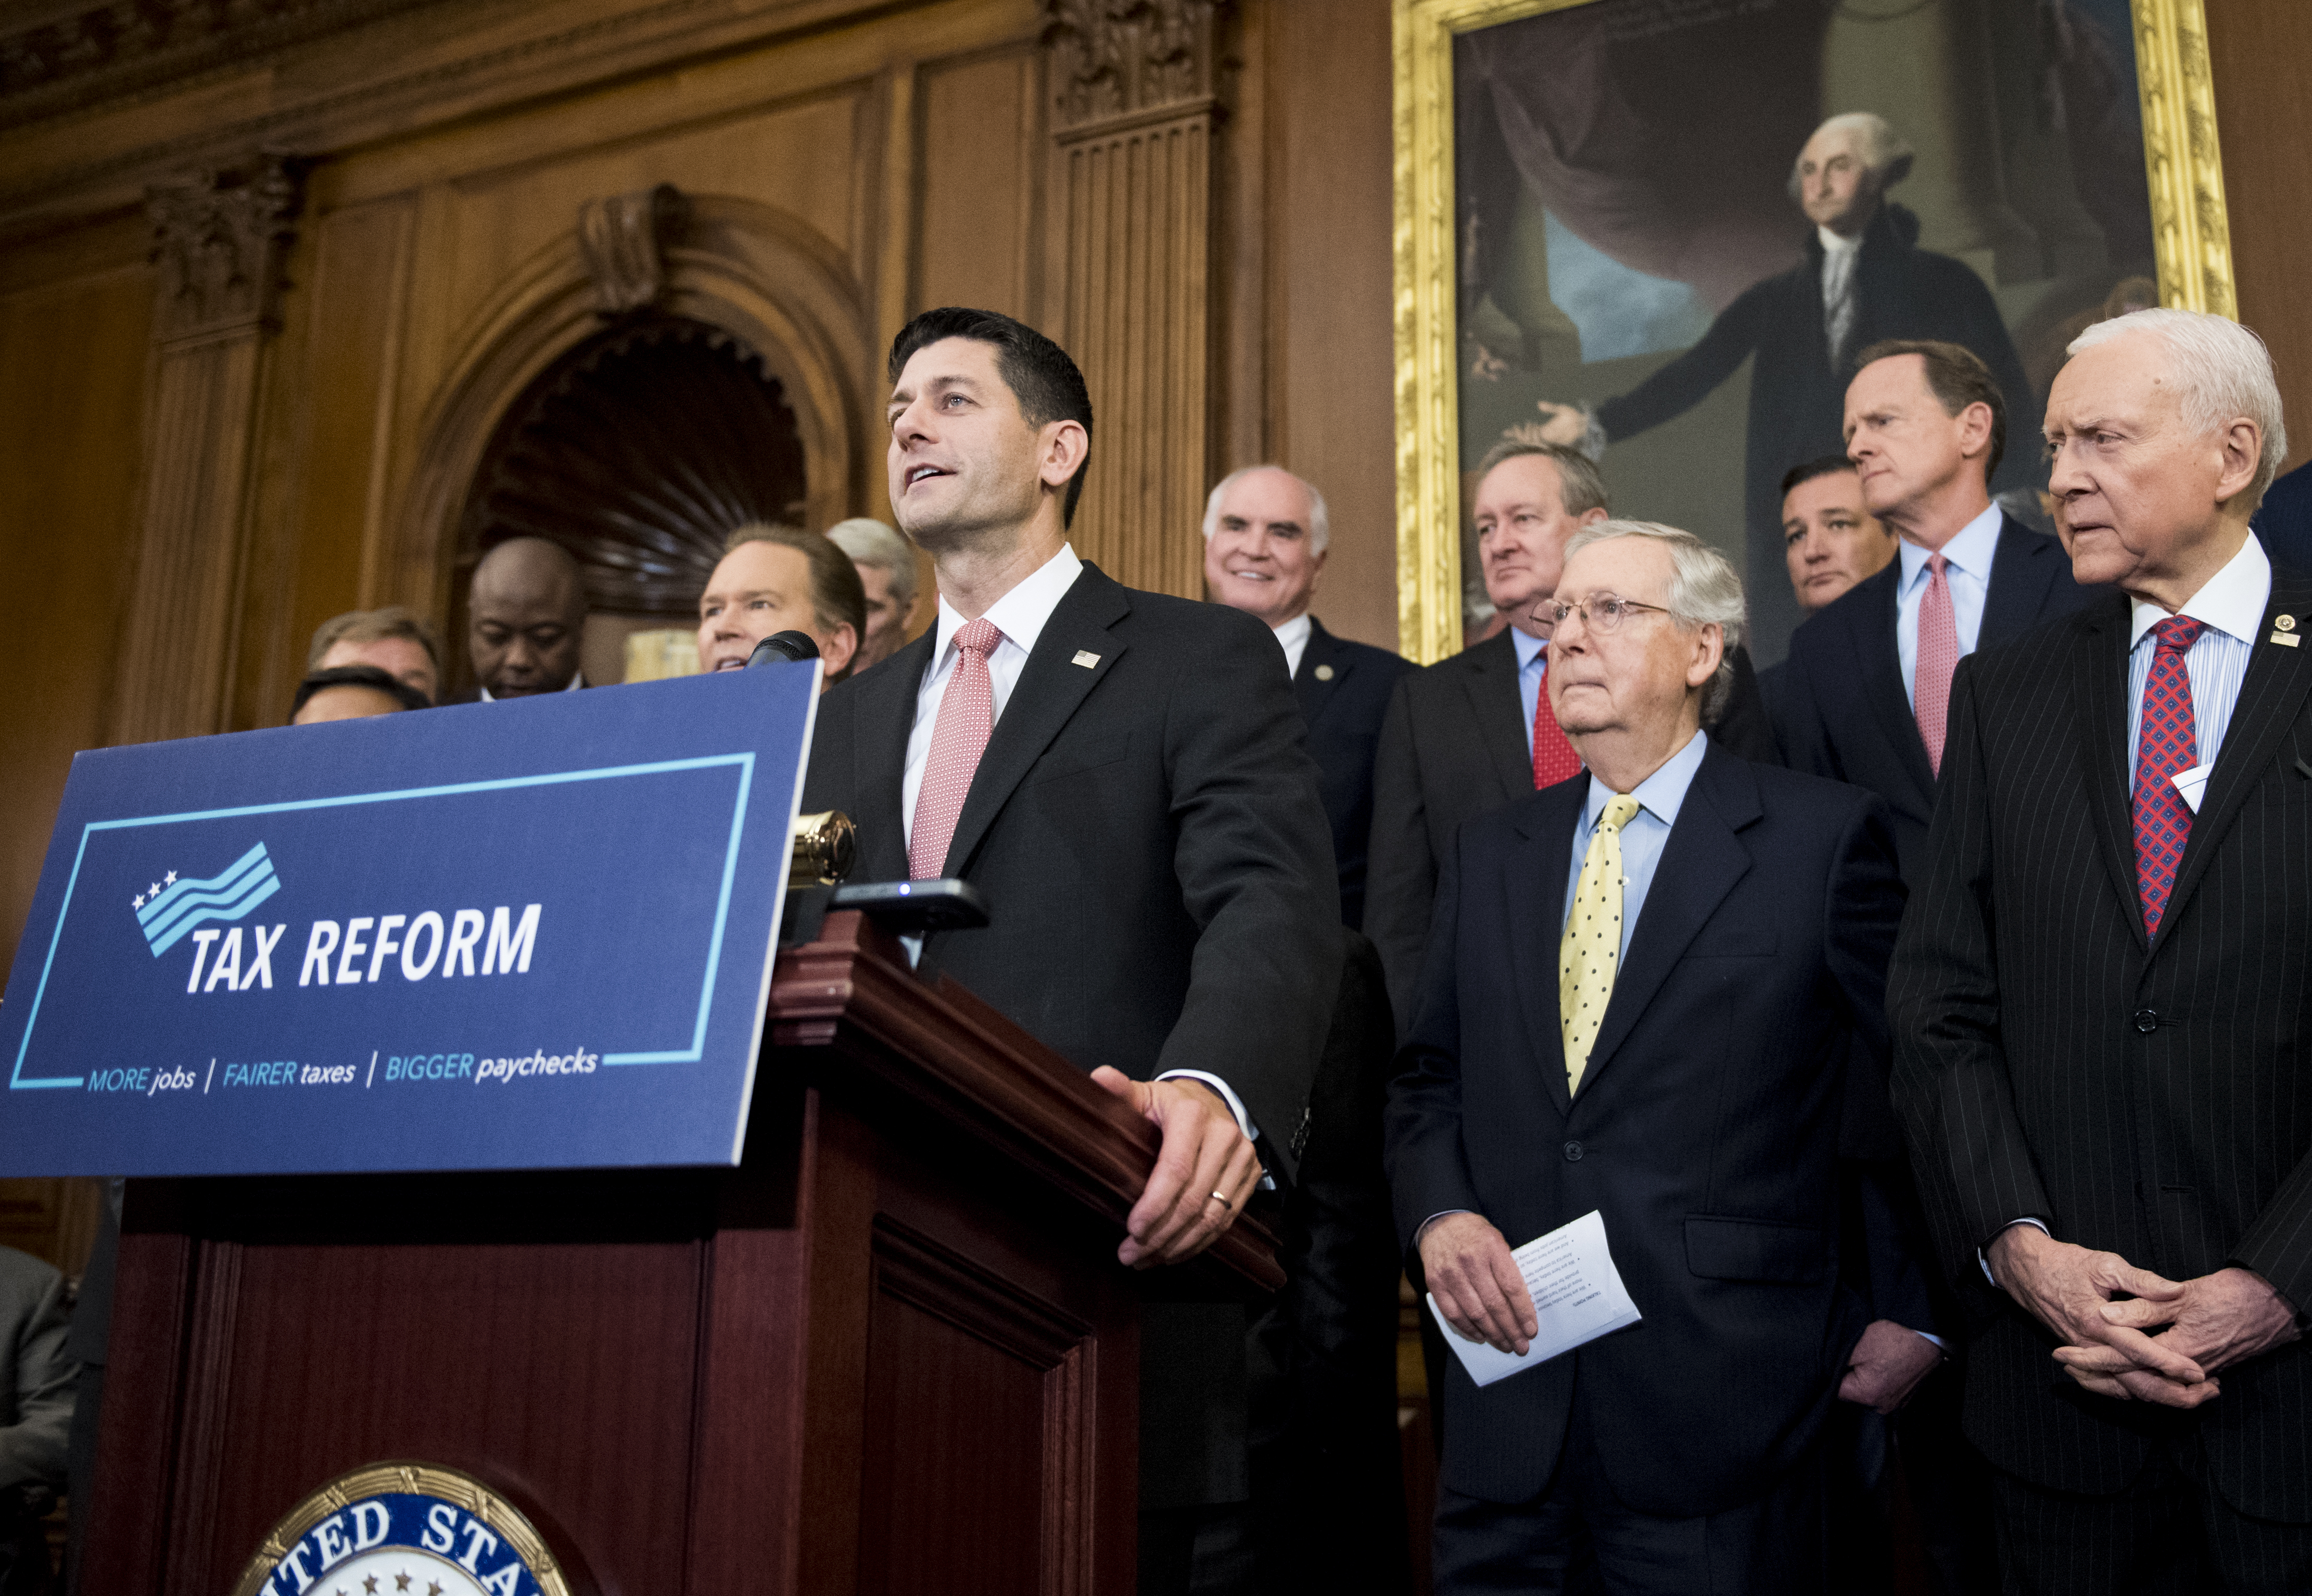 Speaker of the House Paul Ryan, R-Wisc, Senate Majority Leader Mitch McConnell, R-Ky., and Sen. Orrin Hatch, R-Utah,  participate in the Congressional GOP media availability to unveil the GOP tax reform plan on Sept. 27, 2017.